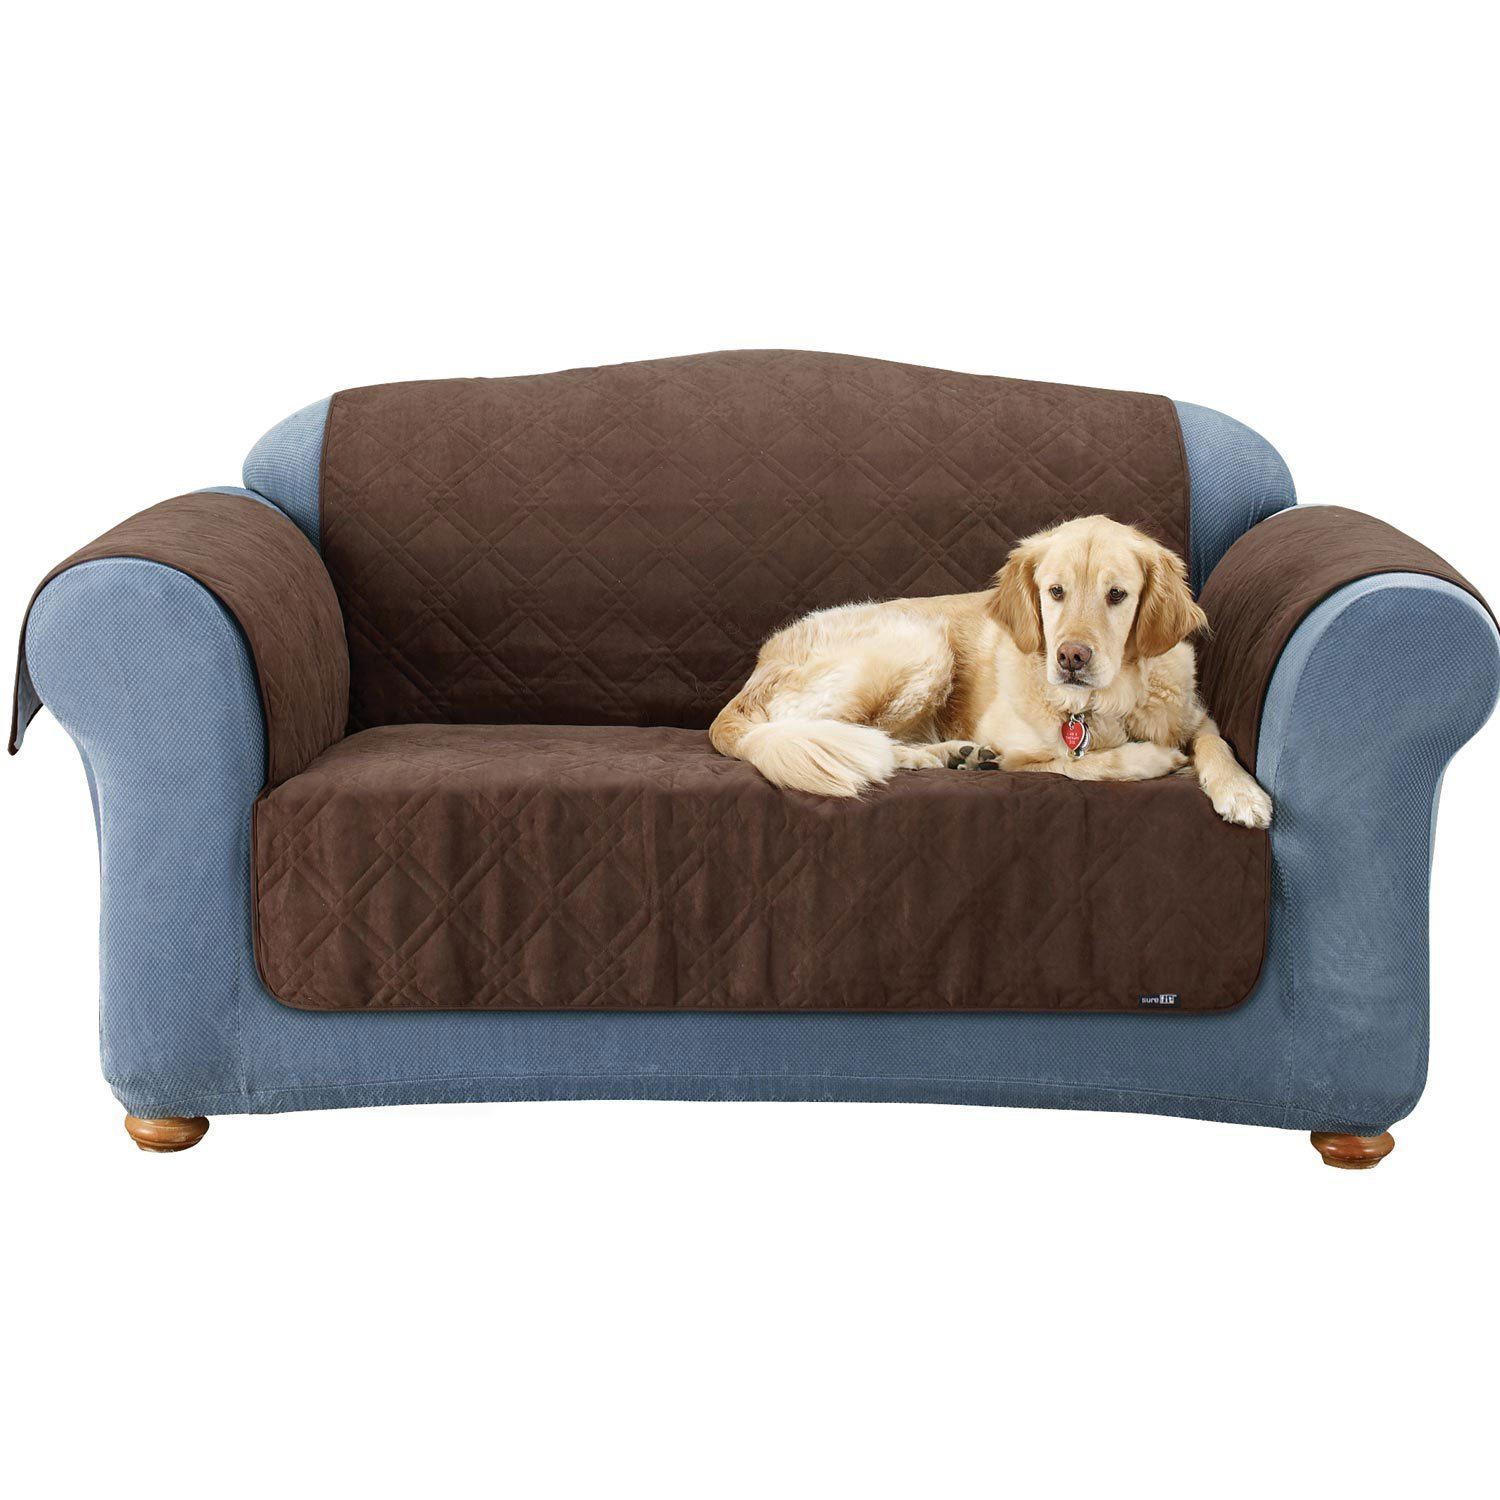 Quilted Suede Sofa Protector Pet Throw Cover